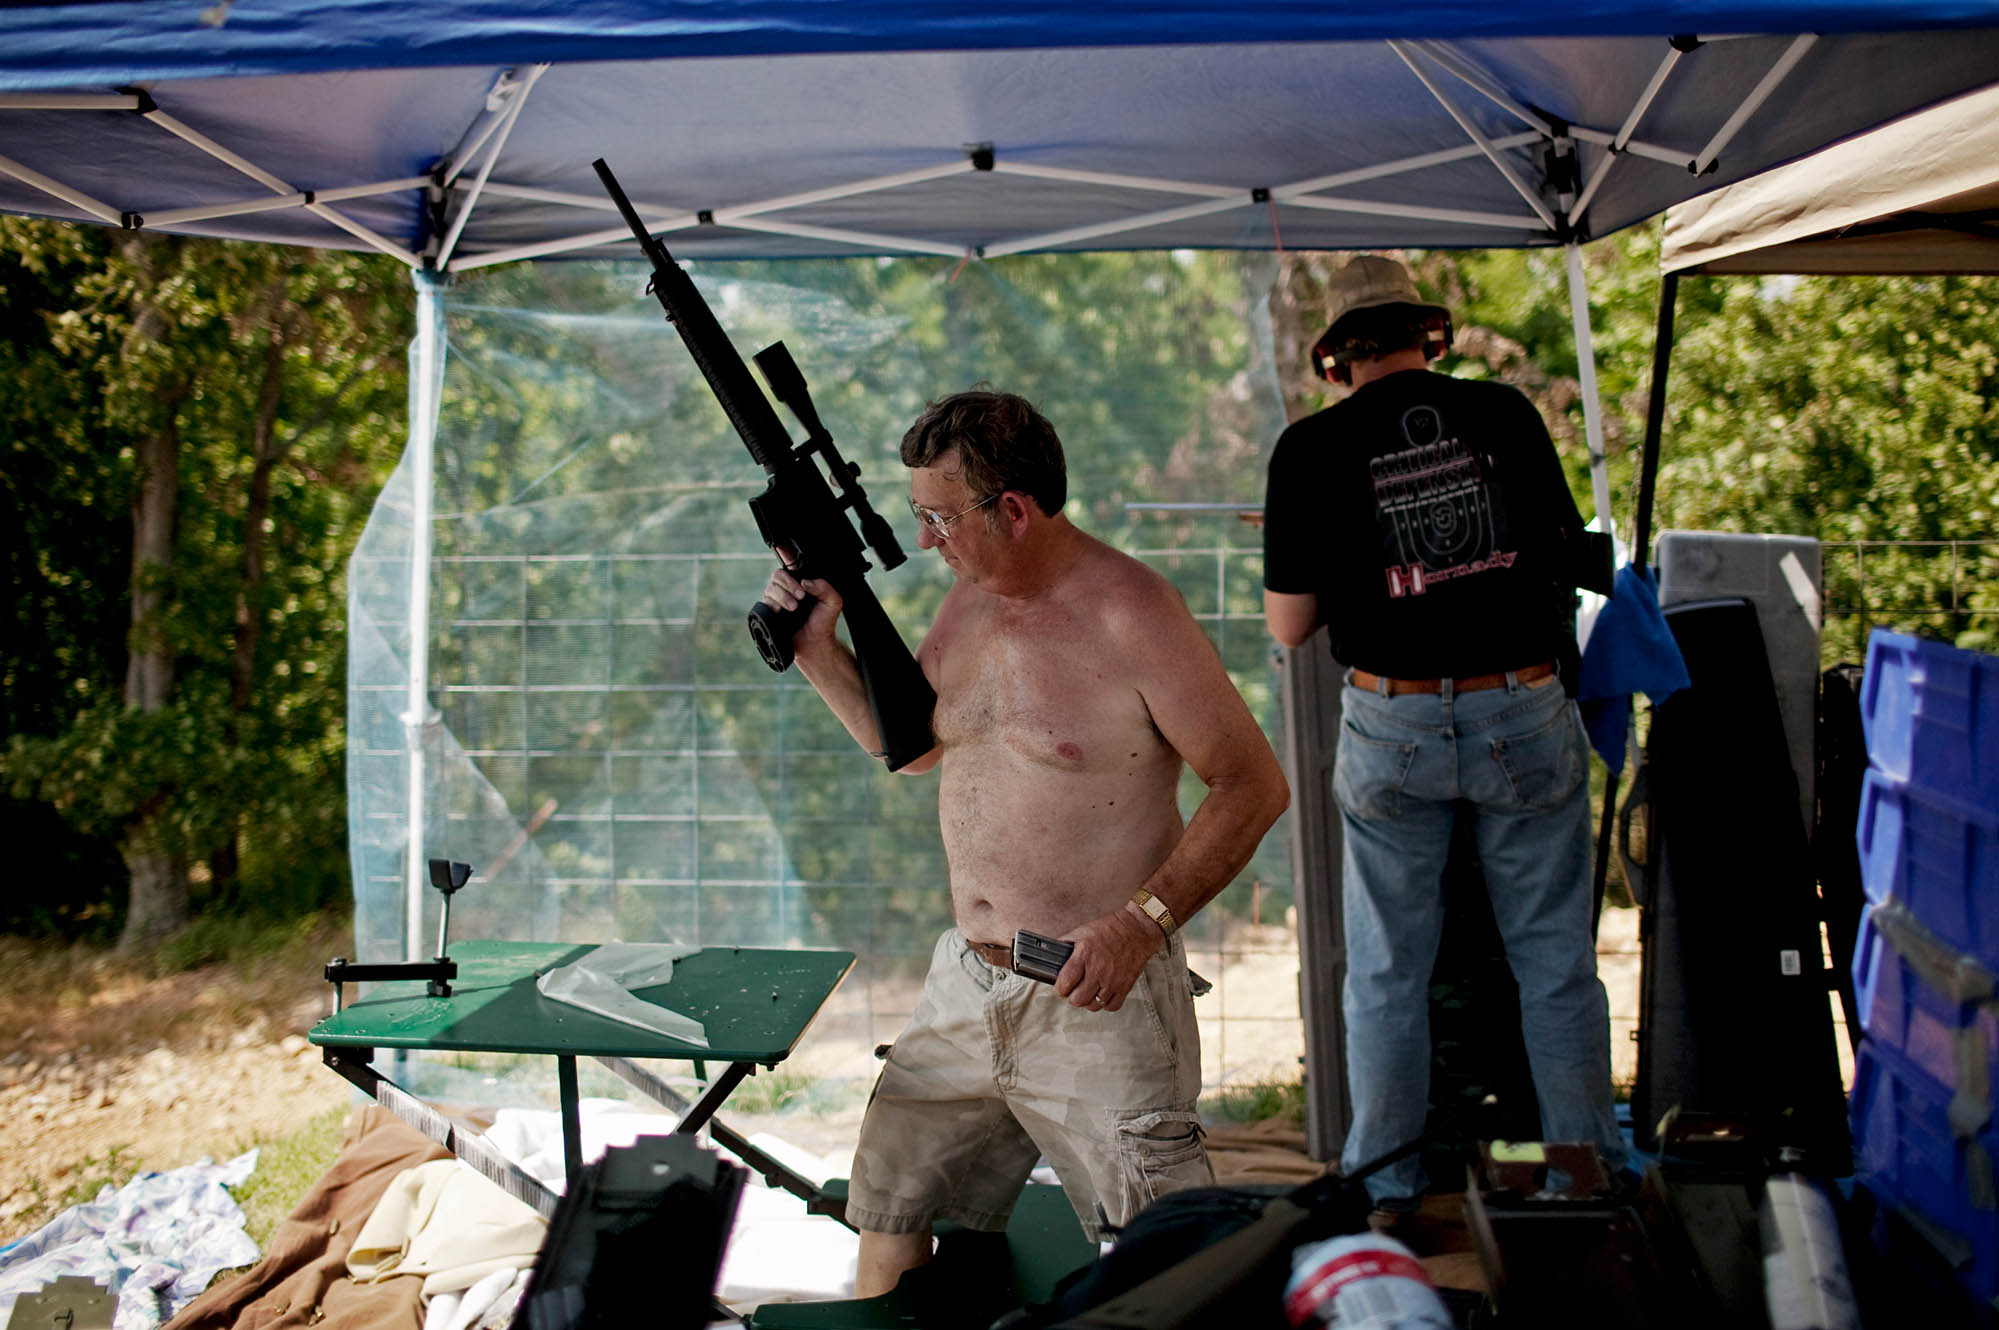 An OFASTS attendee removes his shirt due to the extreme temperature. On the weekend of the shoot, the temperature in Wyandotte reached 102.